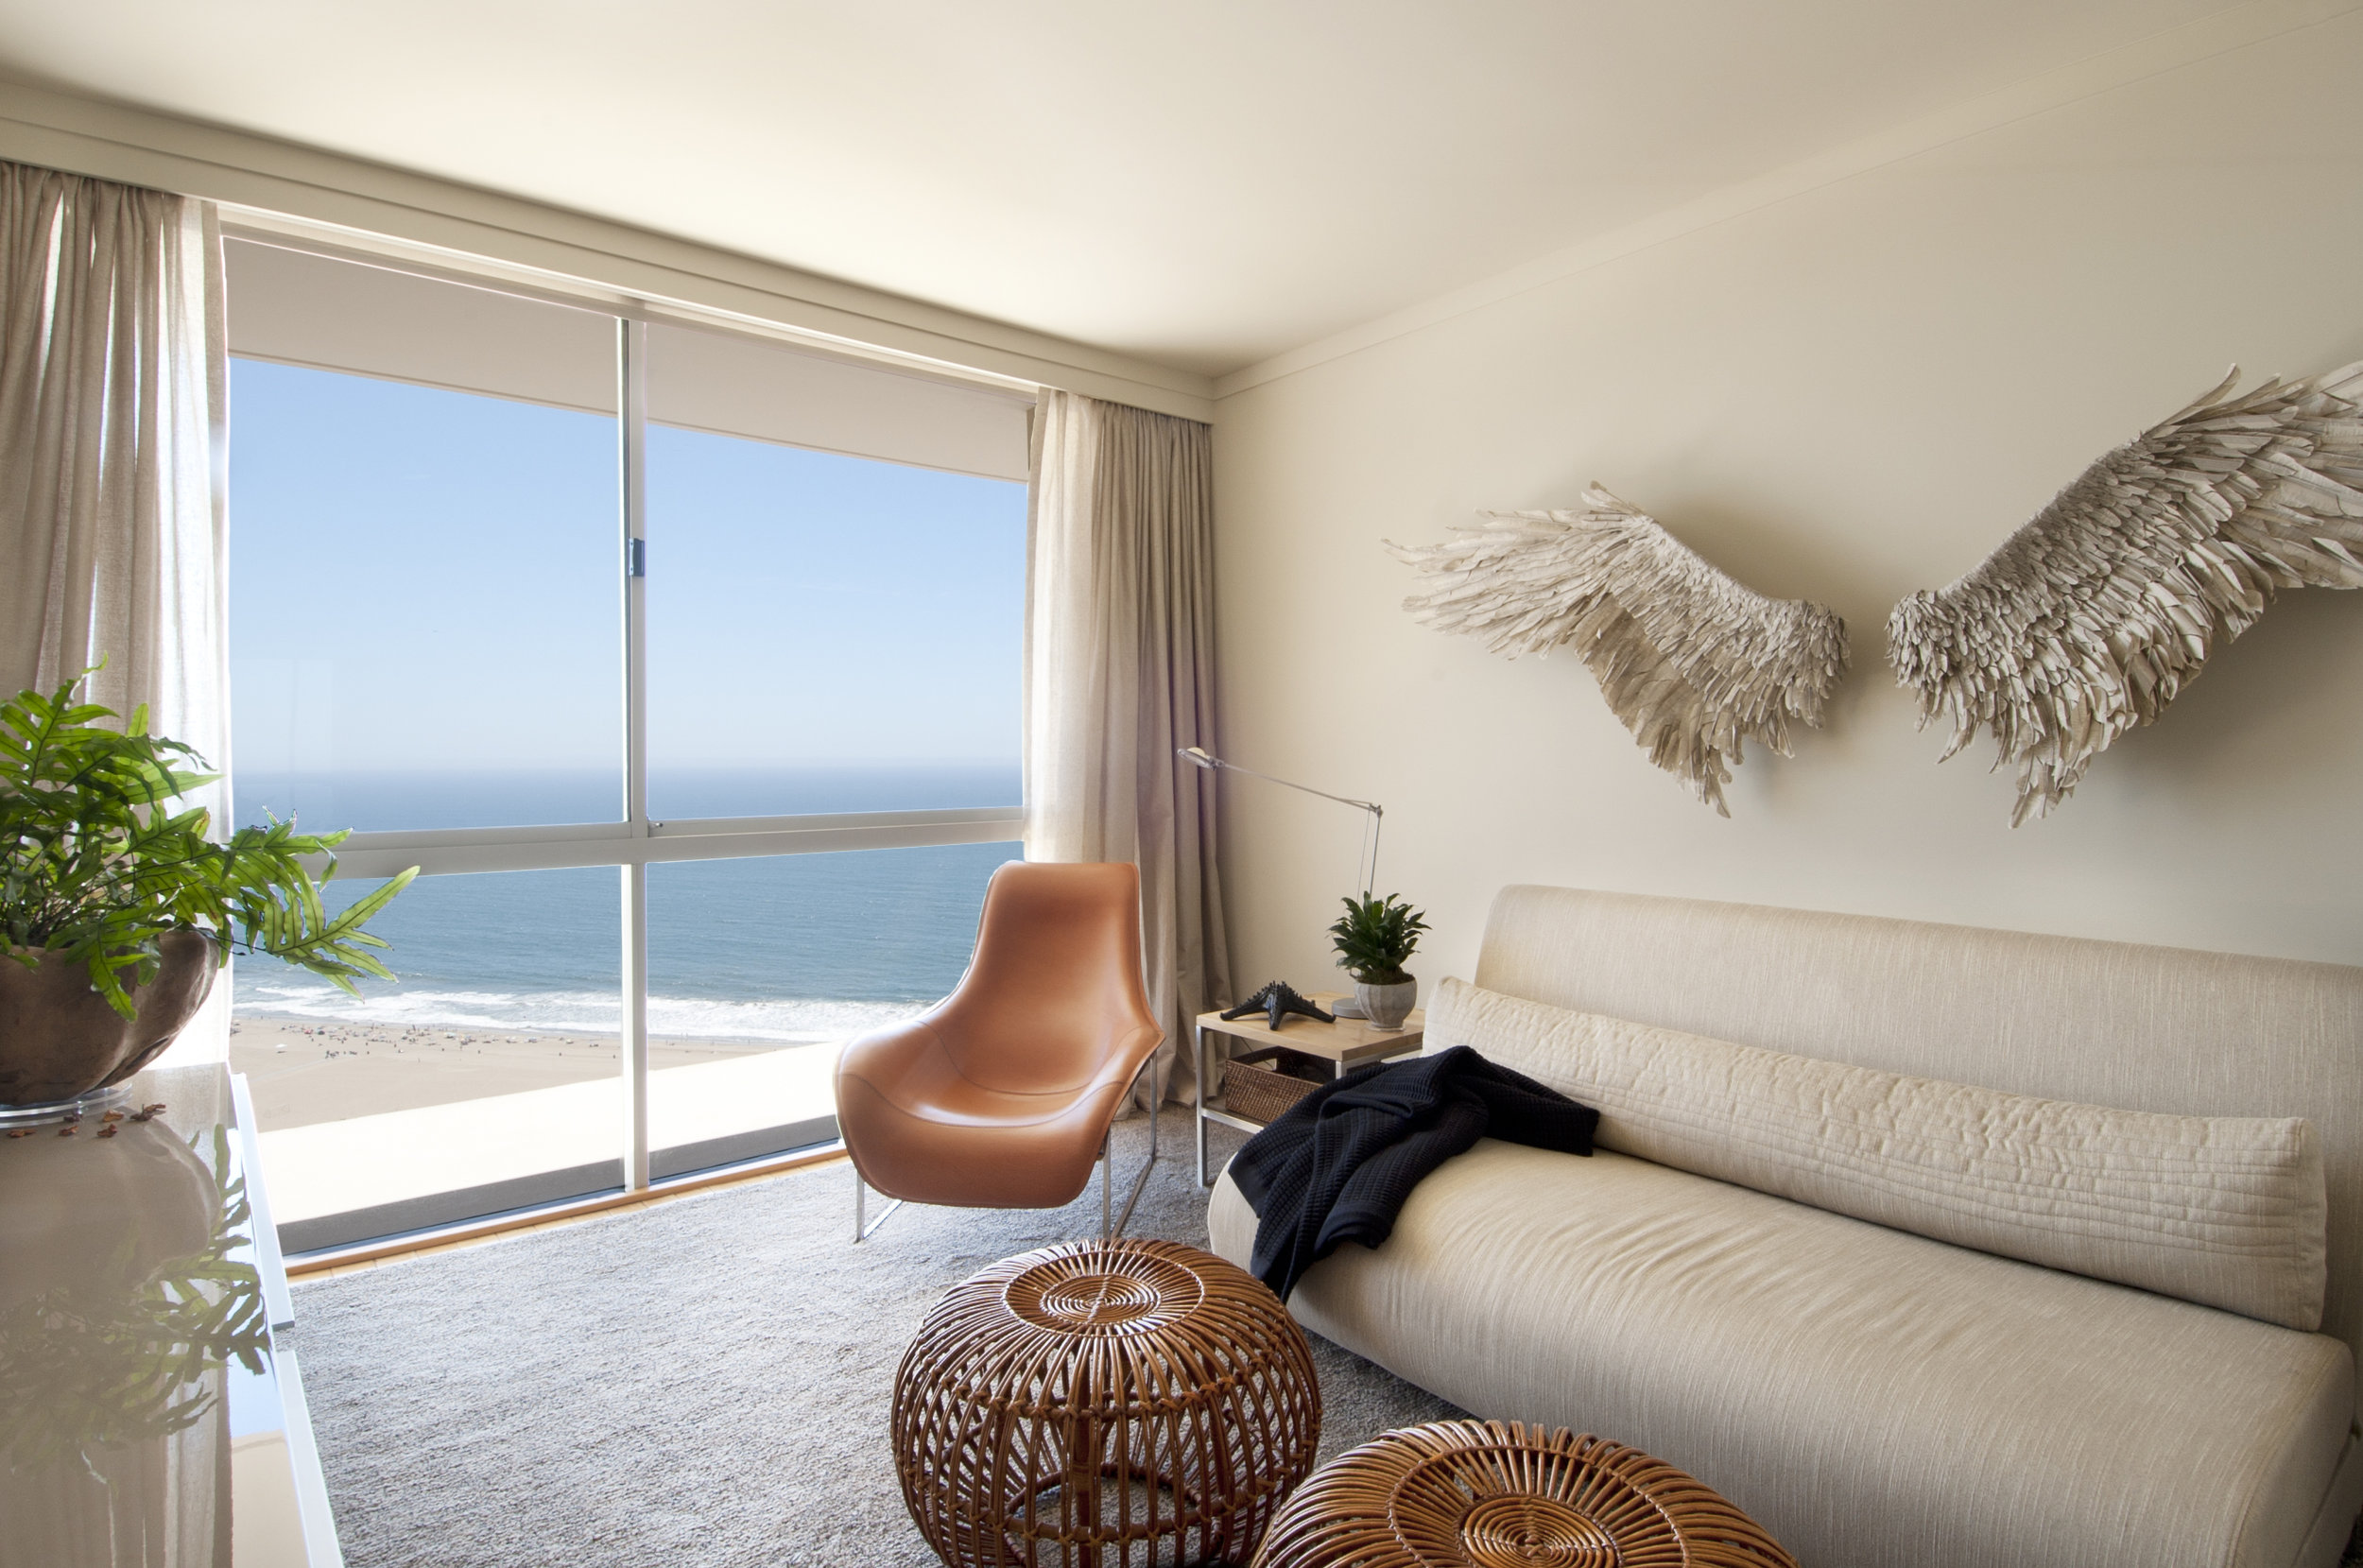 Sarah-barnard-design-modern-luxury-ocean-view-guest-bedroom.jpg